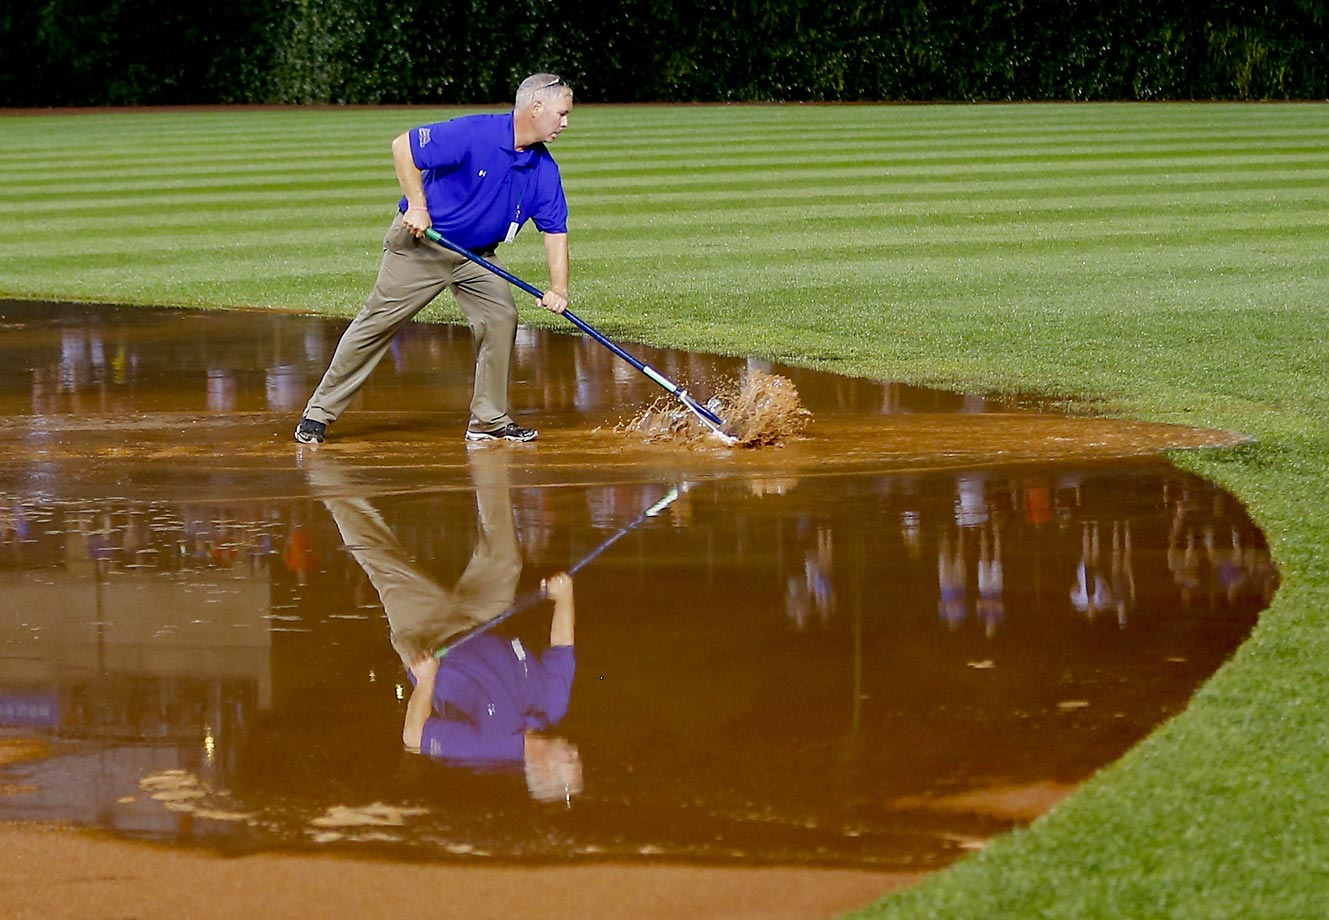 A member of the grounds crew has his hands full after a heavy rain soaked Wrigley Field on Tuesday.